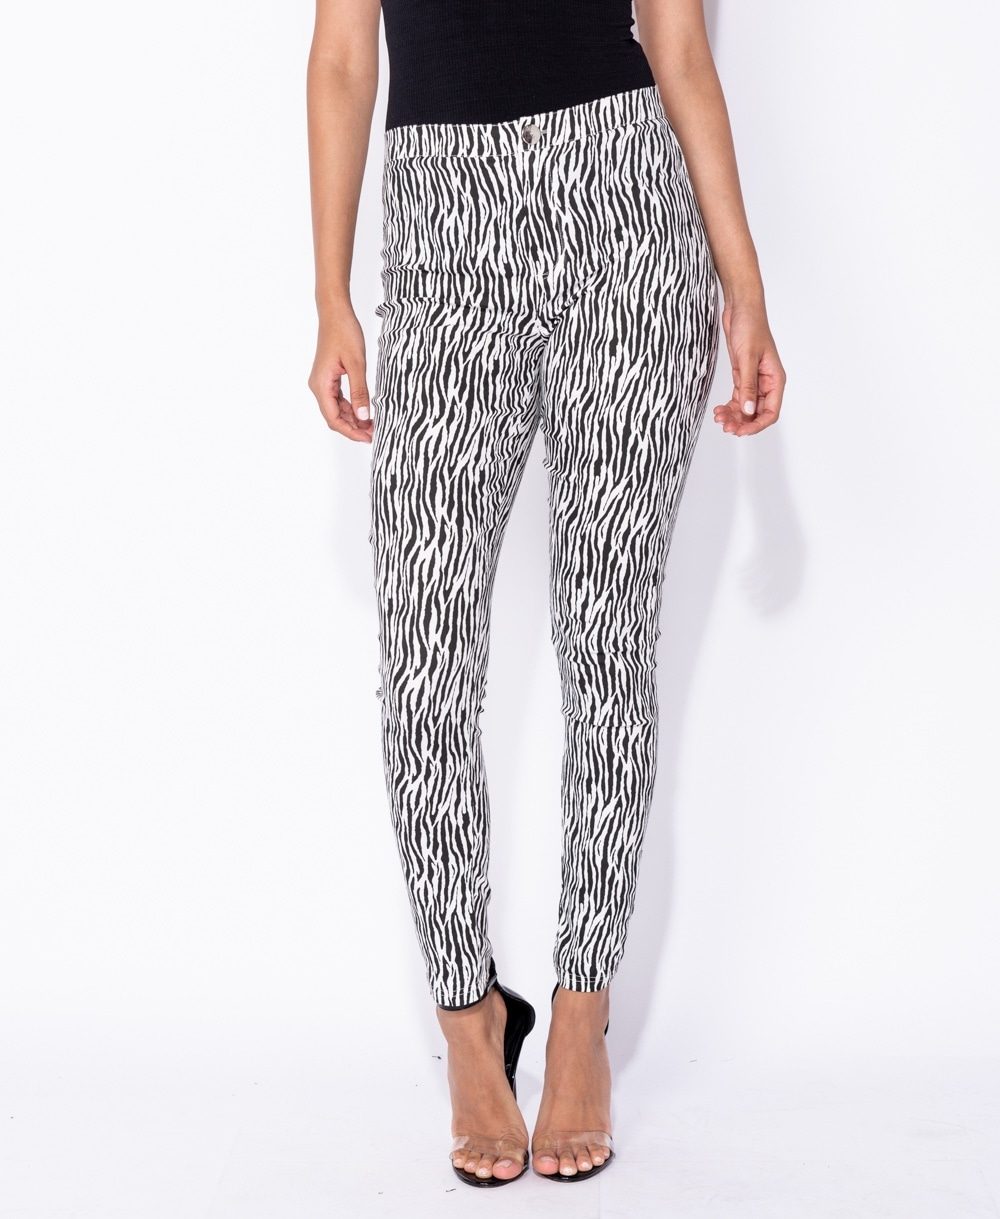 Zebra Print Jeggings